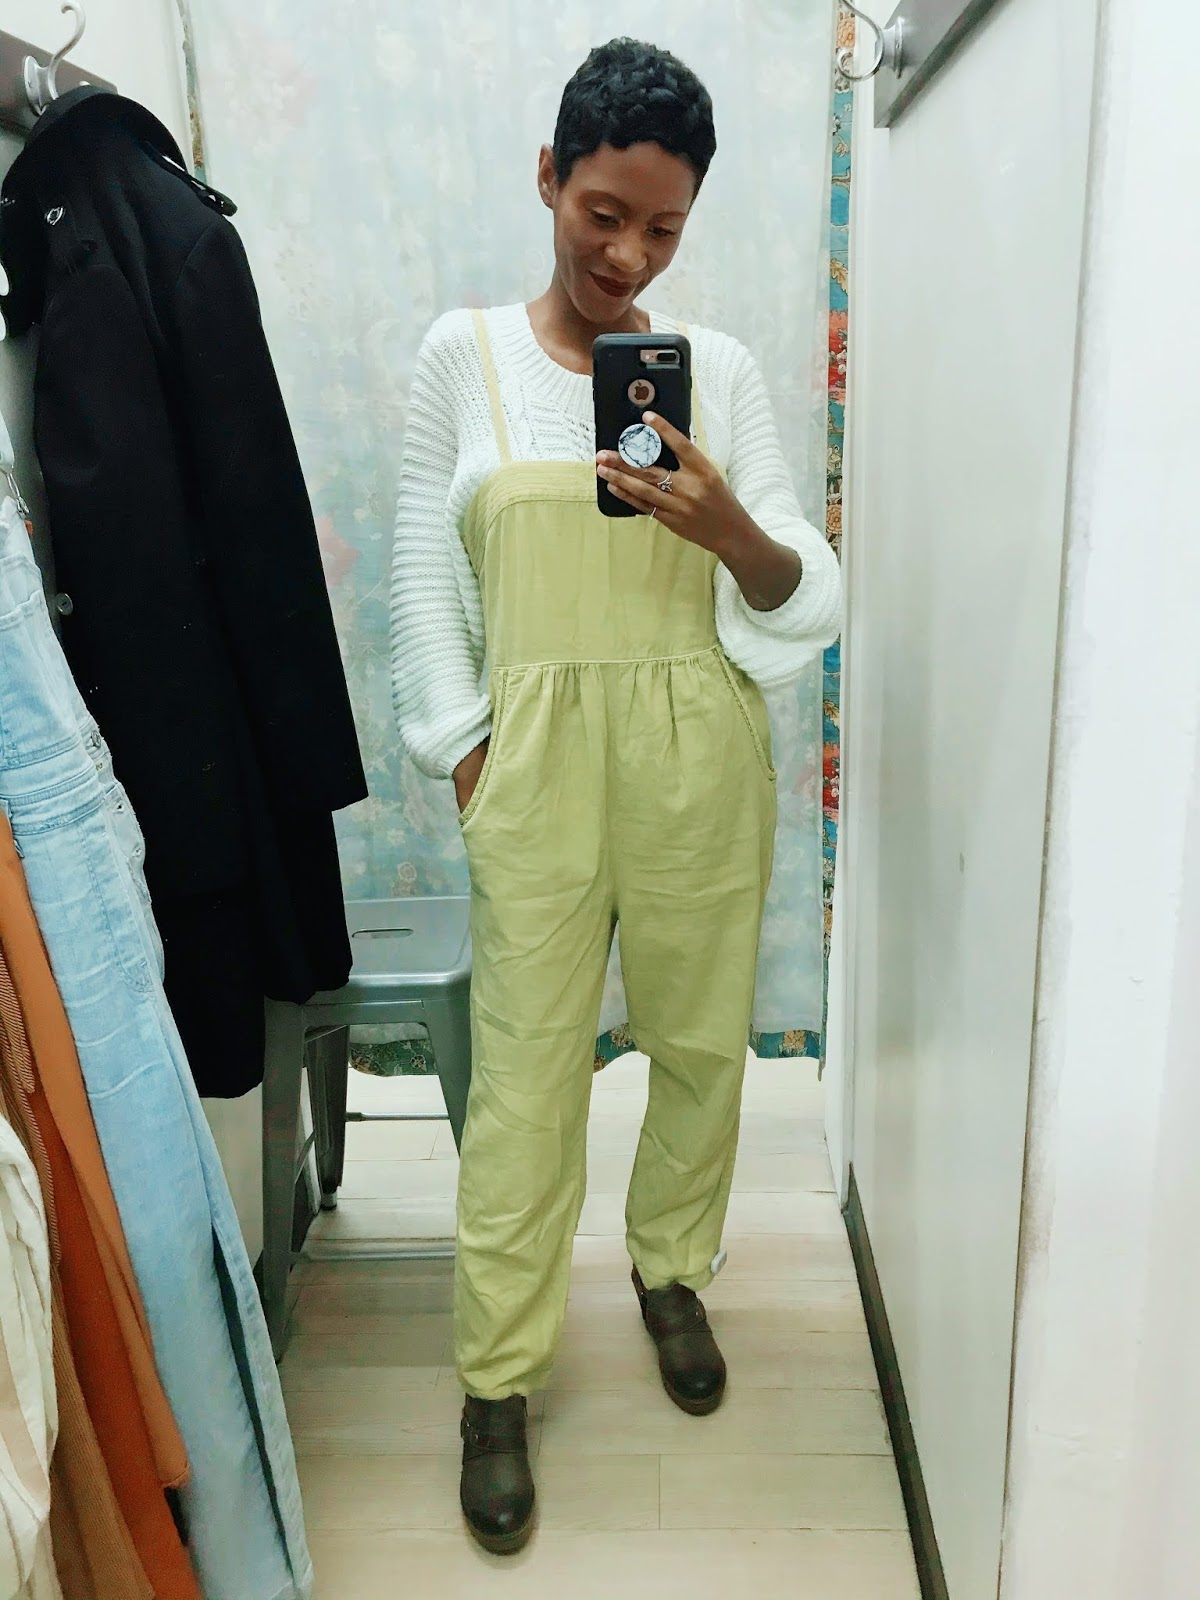 A Cute Try On Haul Of All Of The Jumpsuits I Want To Buy!